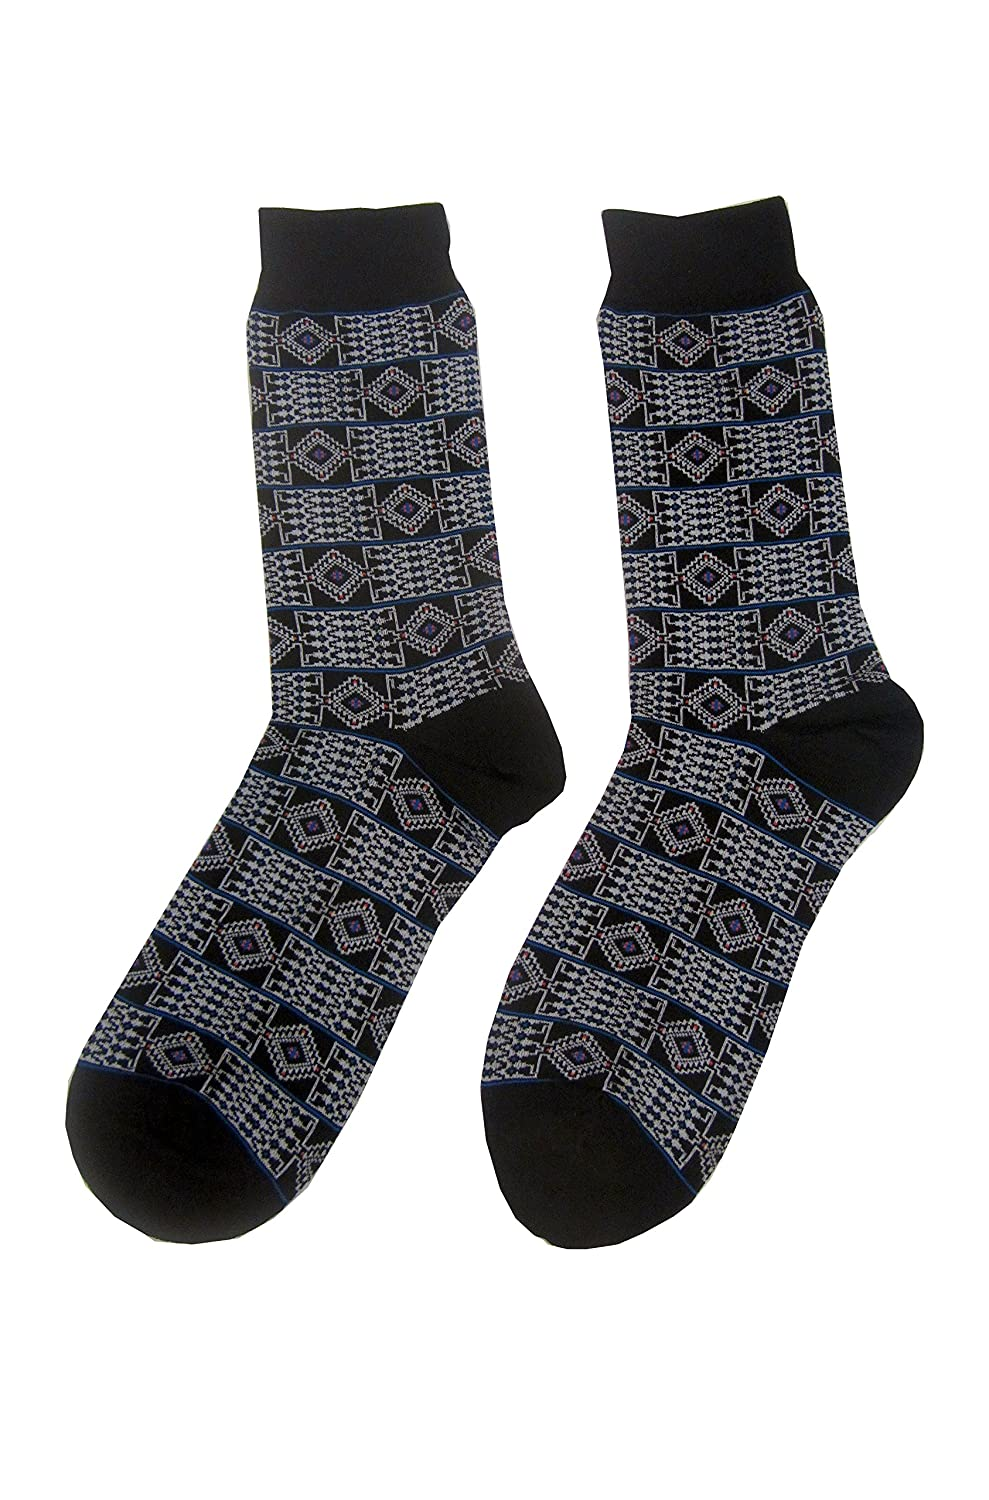 Pattern Socks Custom Design Ideas